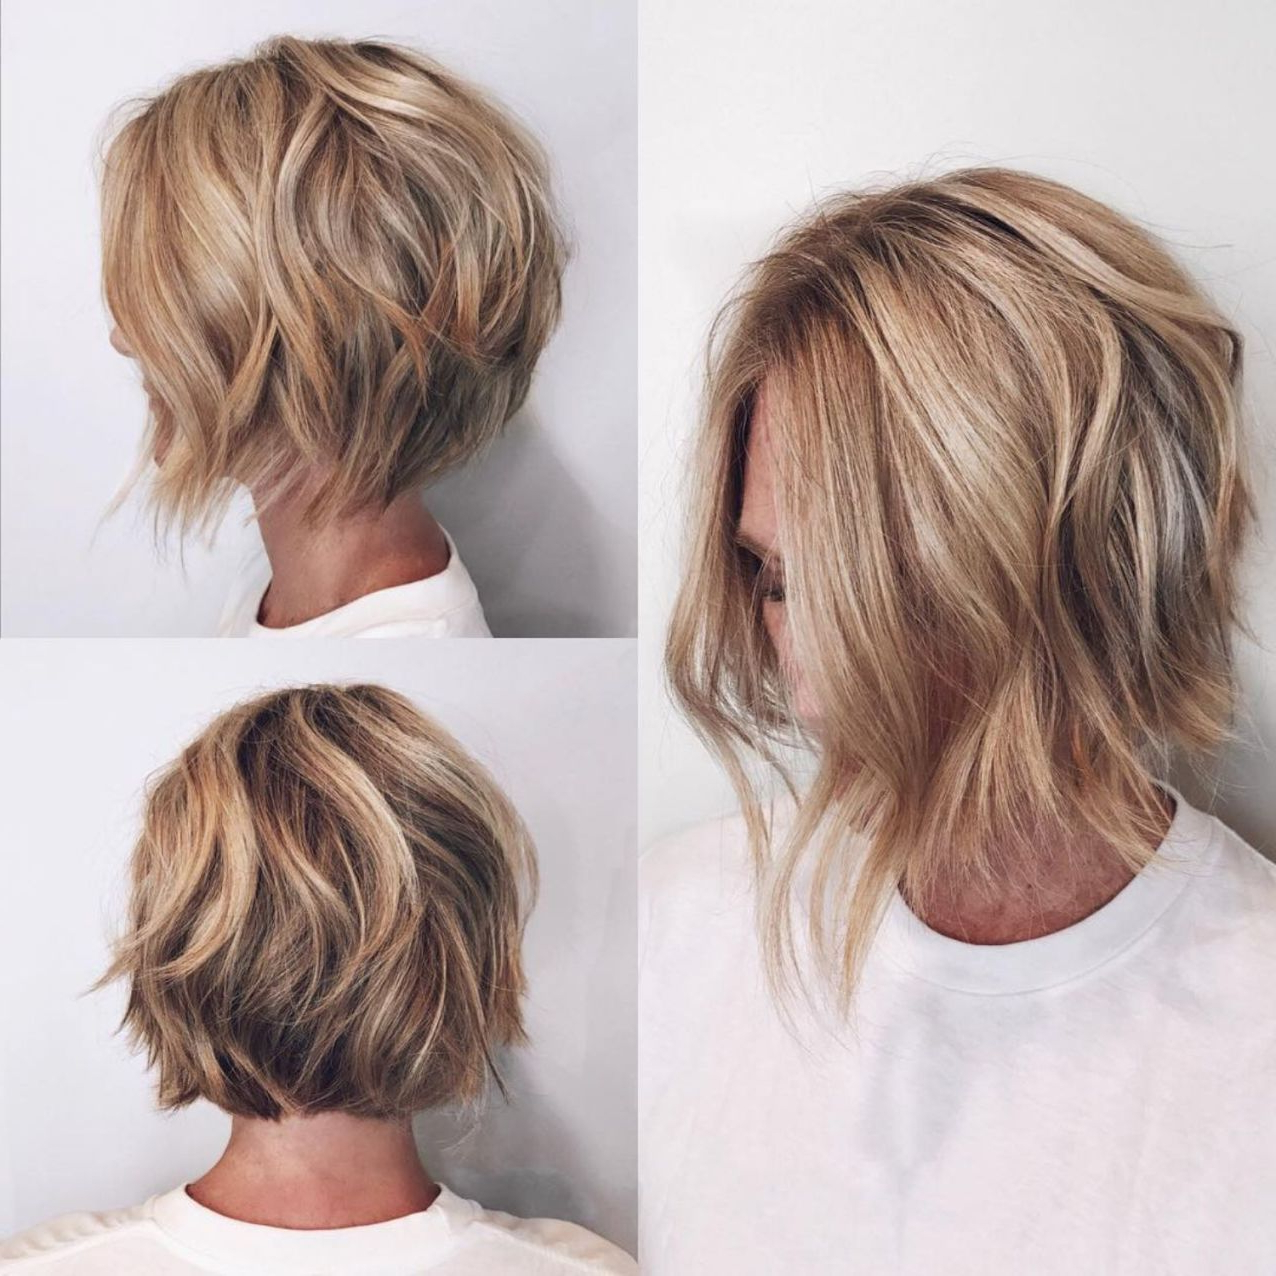 60 Layered Bob Styles: Modern Haircuts With Layers For Any Within Trendy Classic Disconnected Bob Haircuts (View 5 of 20)